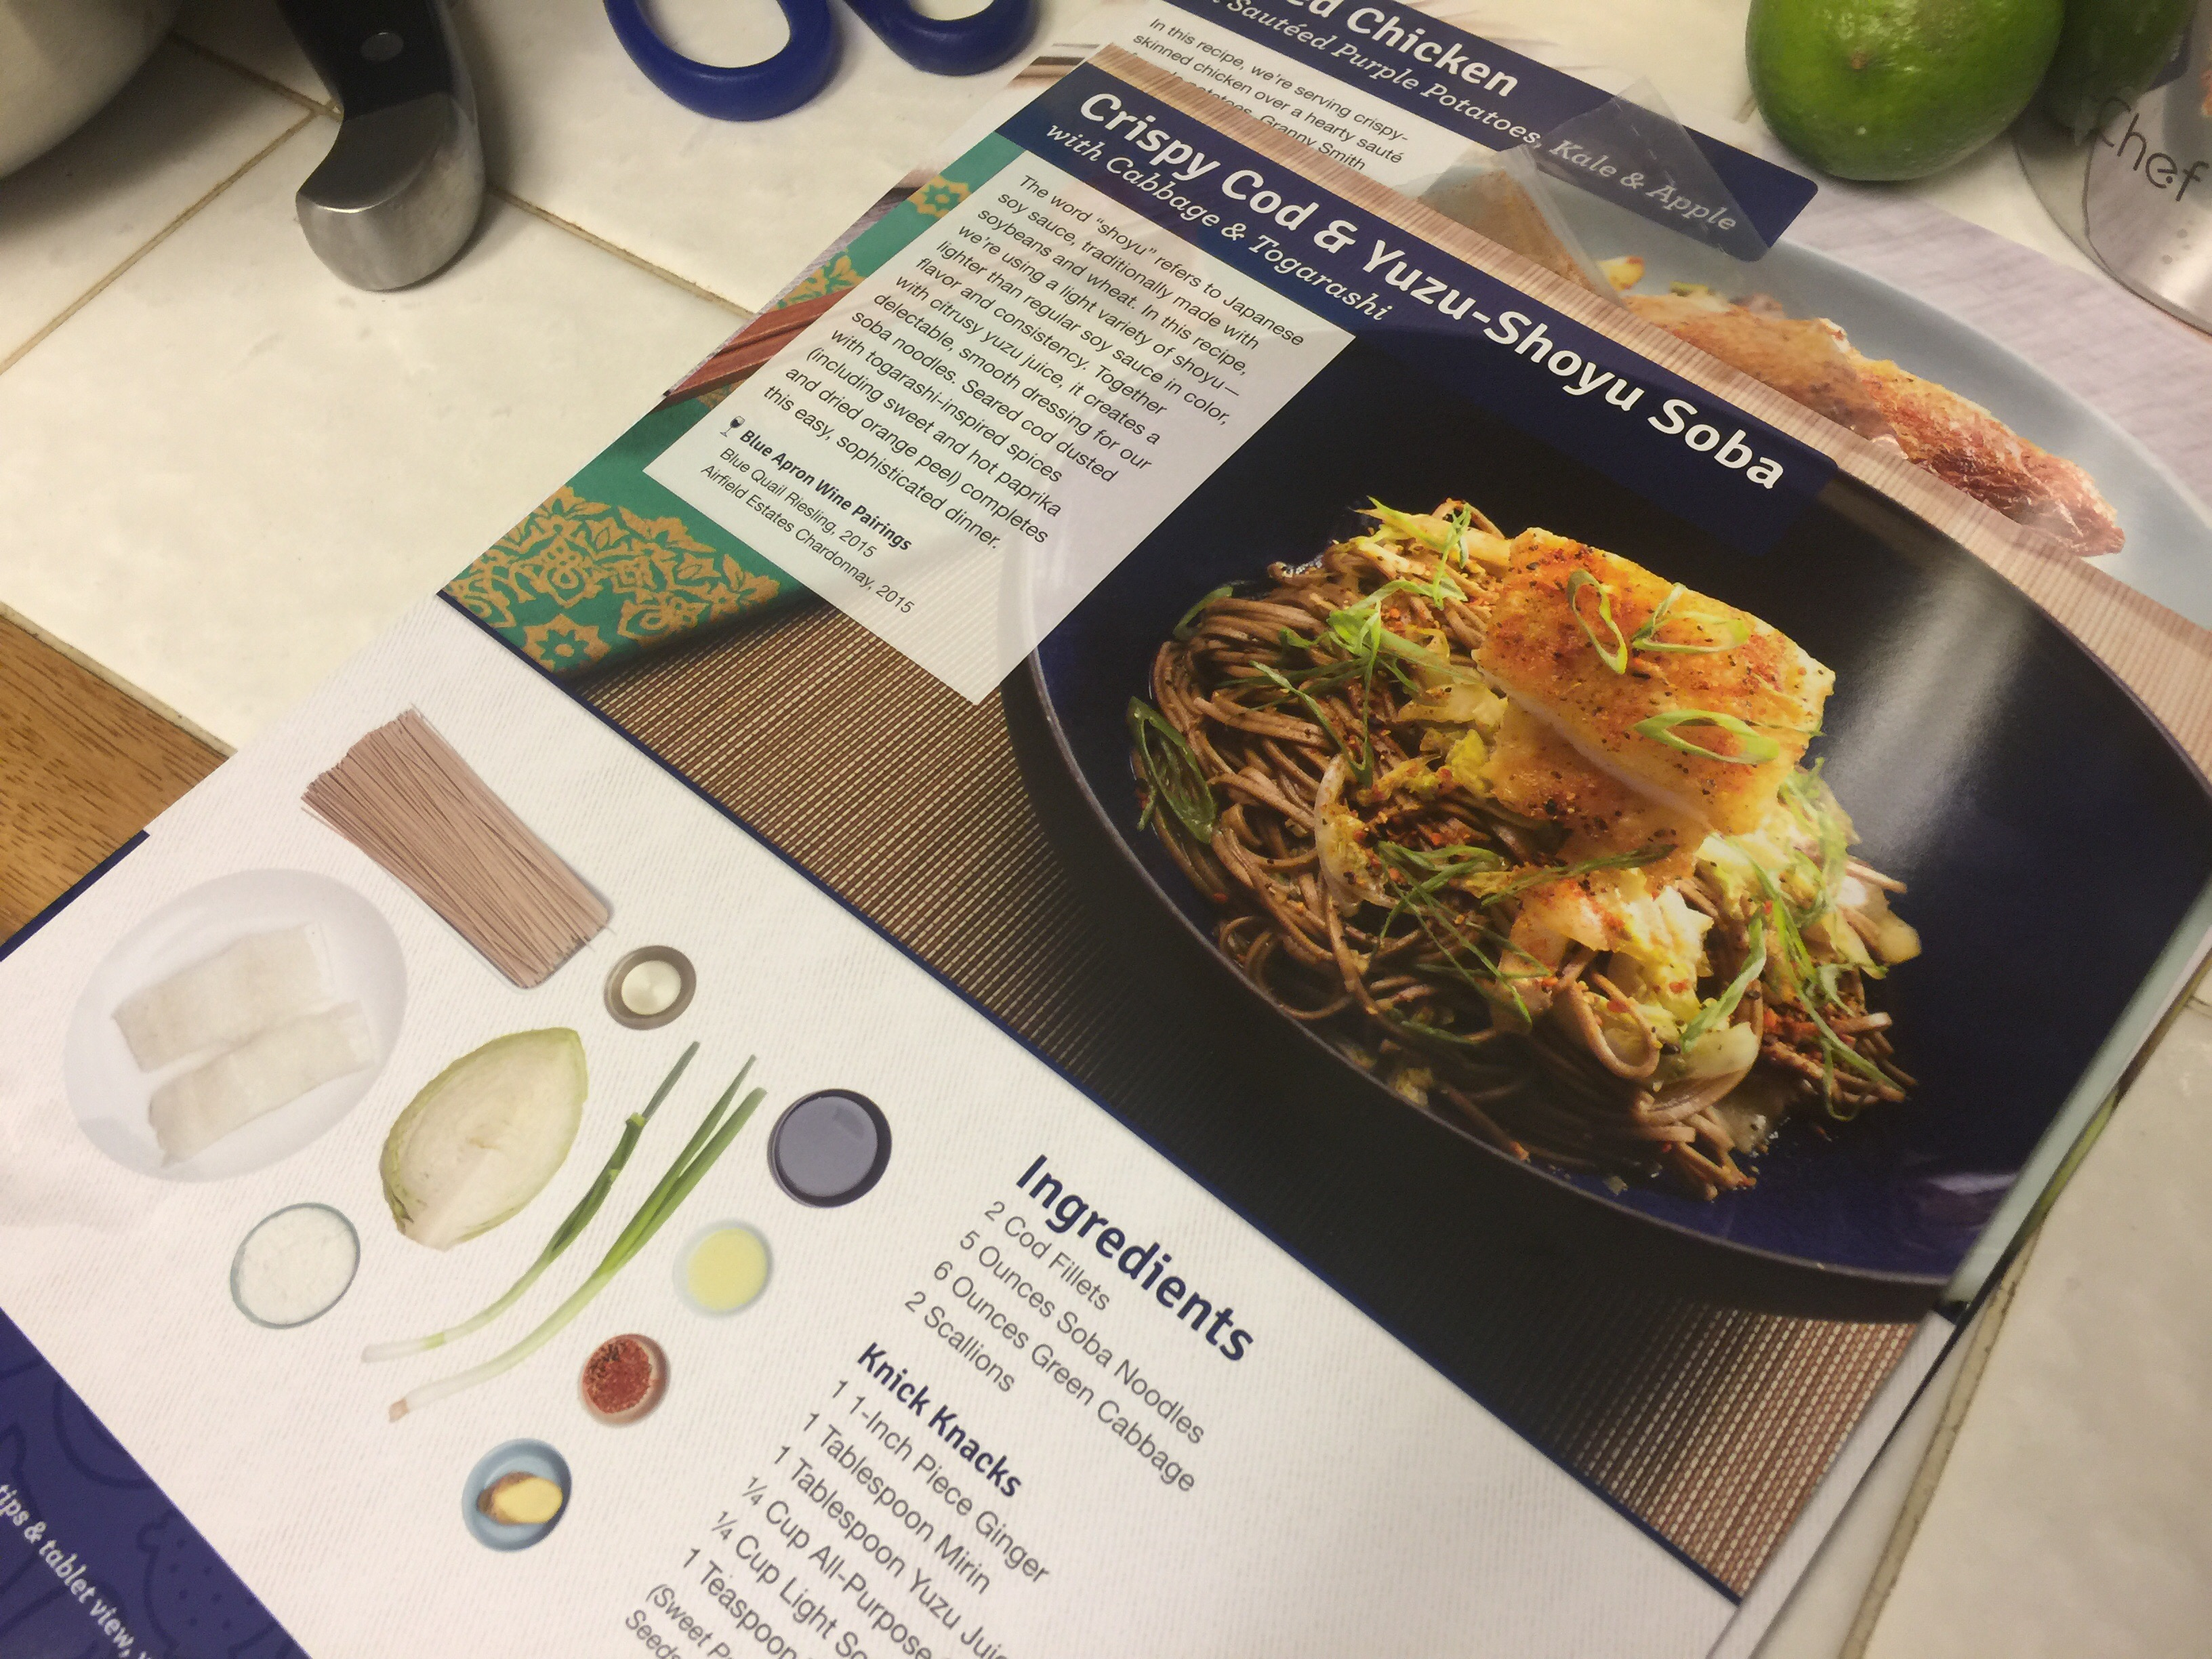 Blue apron yuzu cod - I Ll Be Eating The Recipies Throughout The Week I Sure Hope They All Turned Out Great From What I Ve Tasted So Far They Have But This Week Will Be The